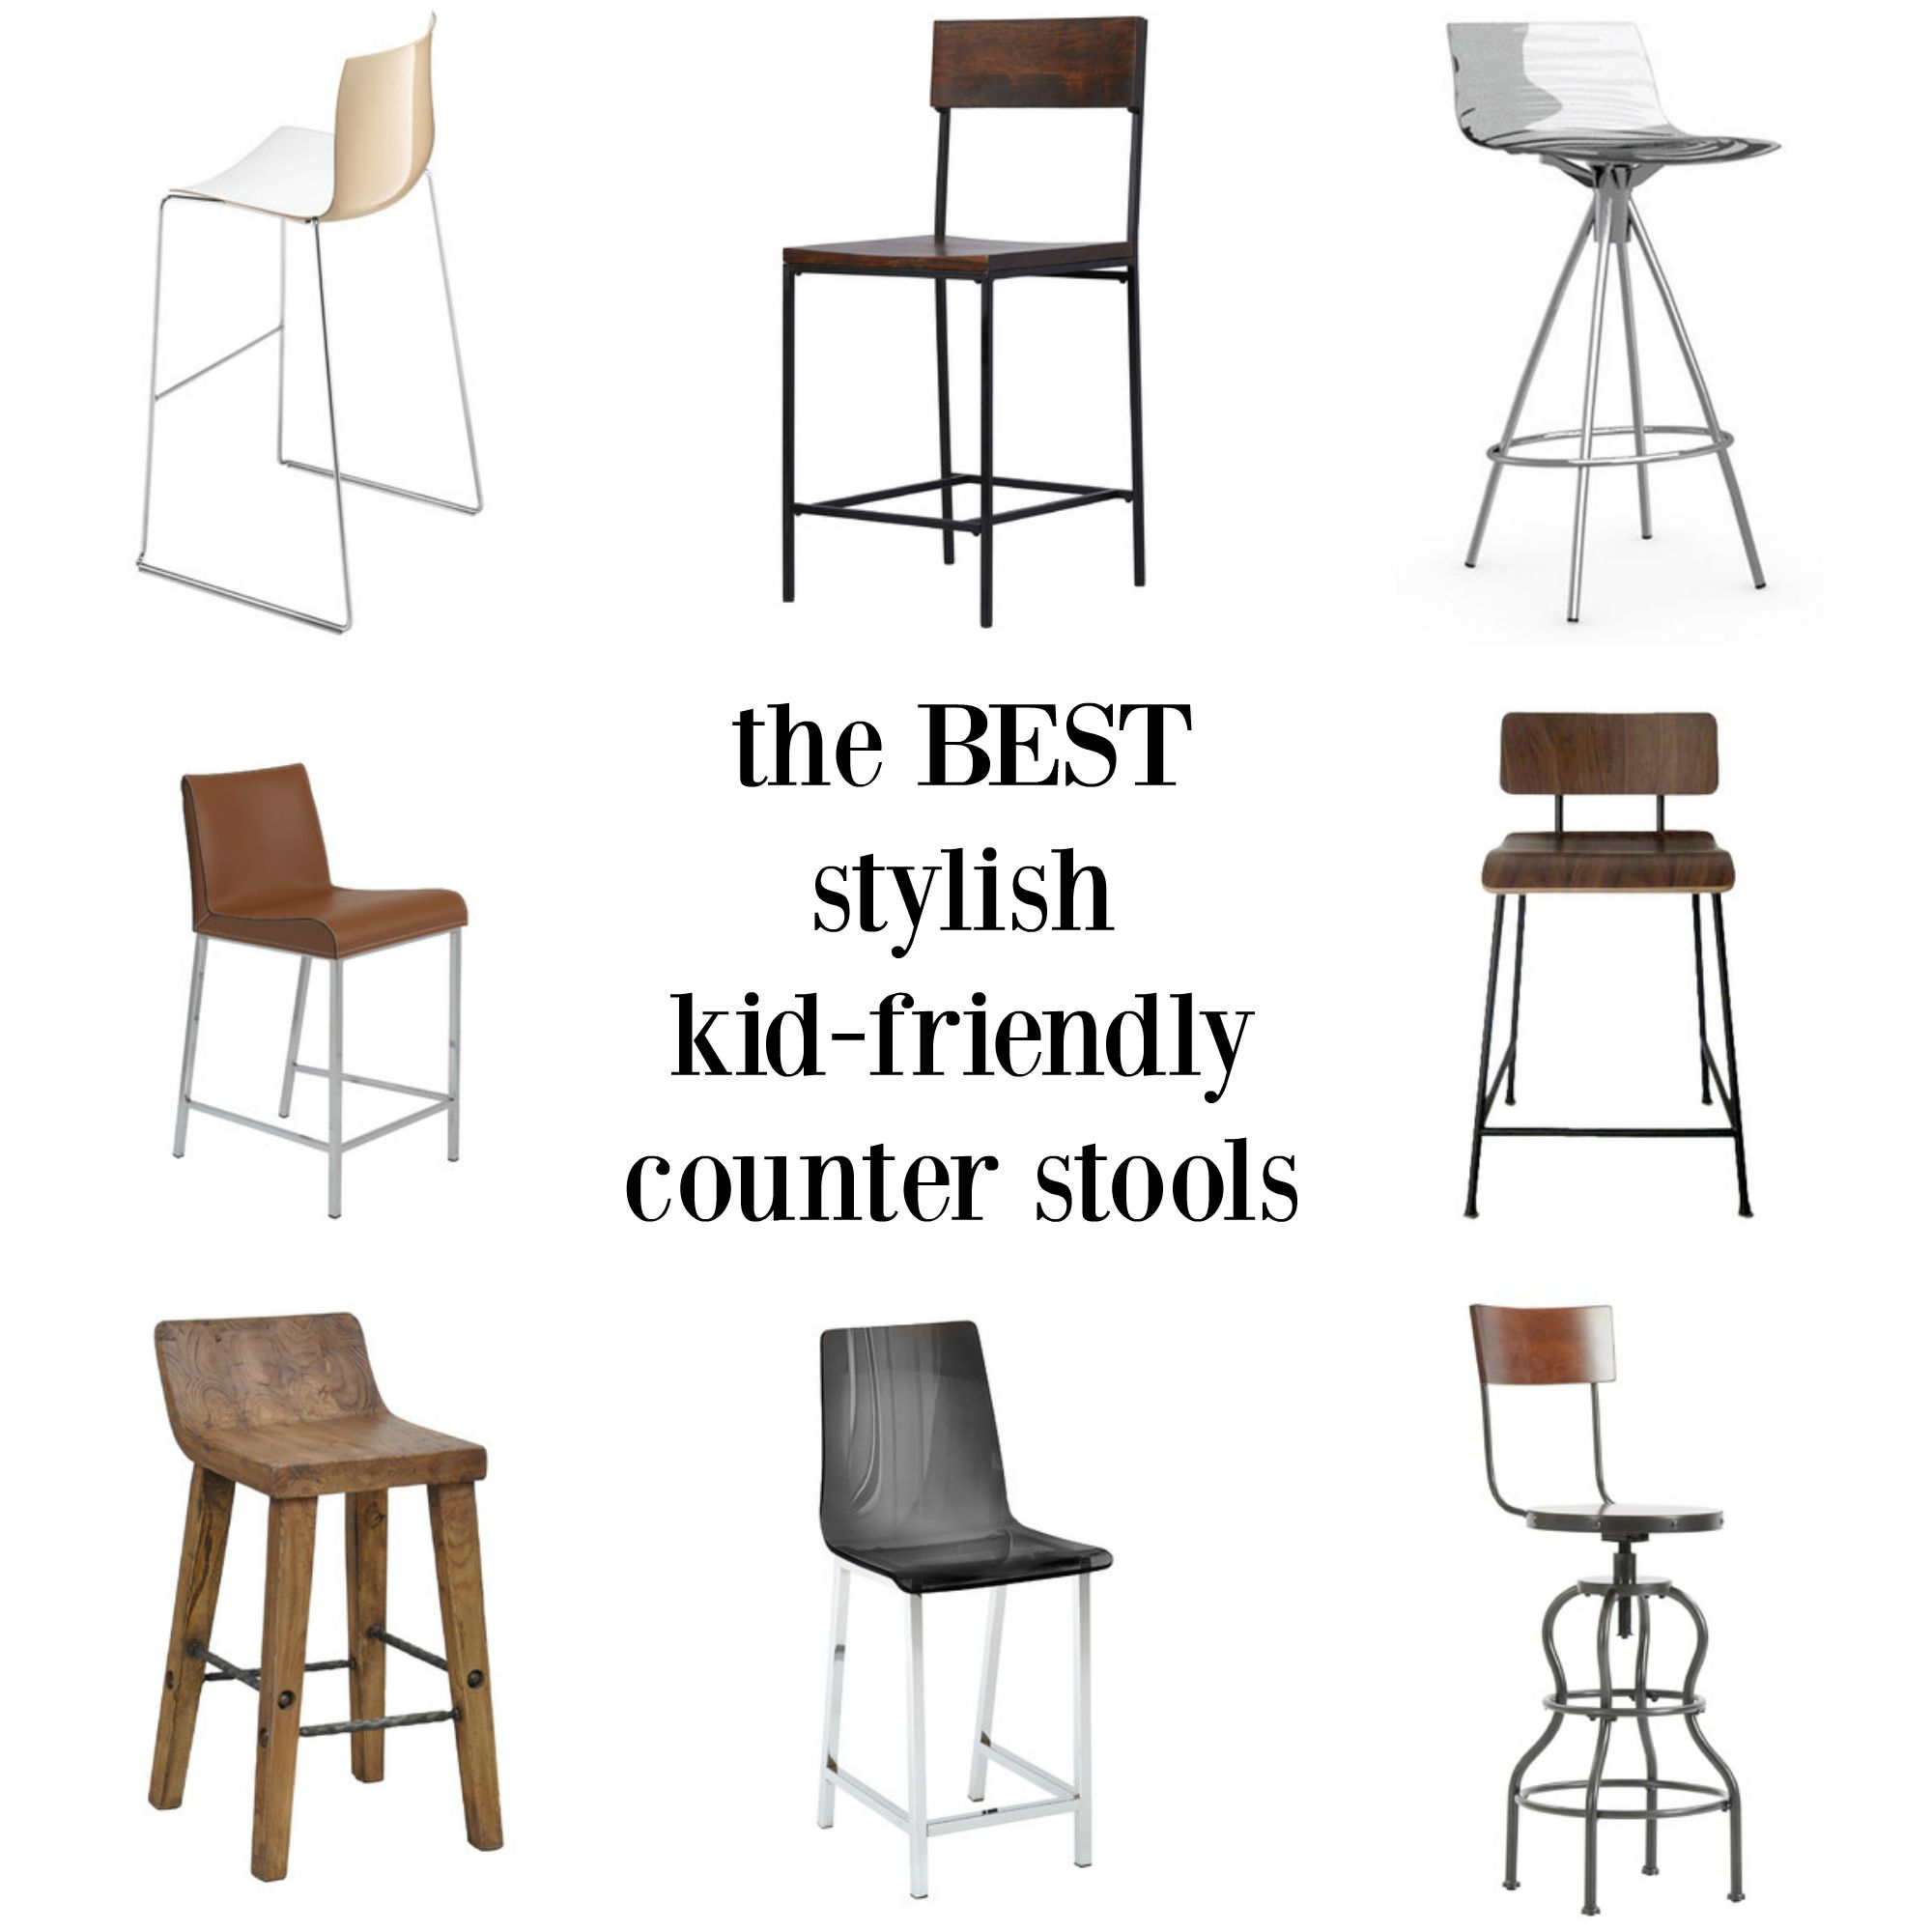 Outstanding The Counter Stools Search The Best Stylish Kid Friendly Uwap Interior Chair Design Uwaporg